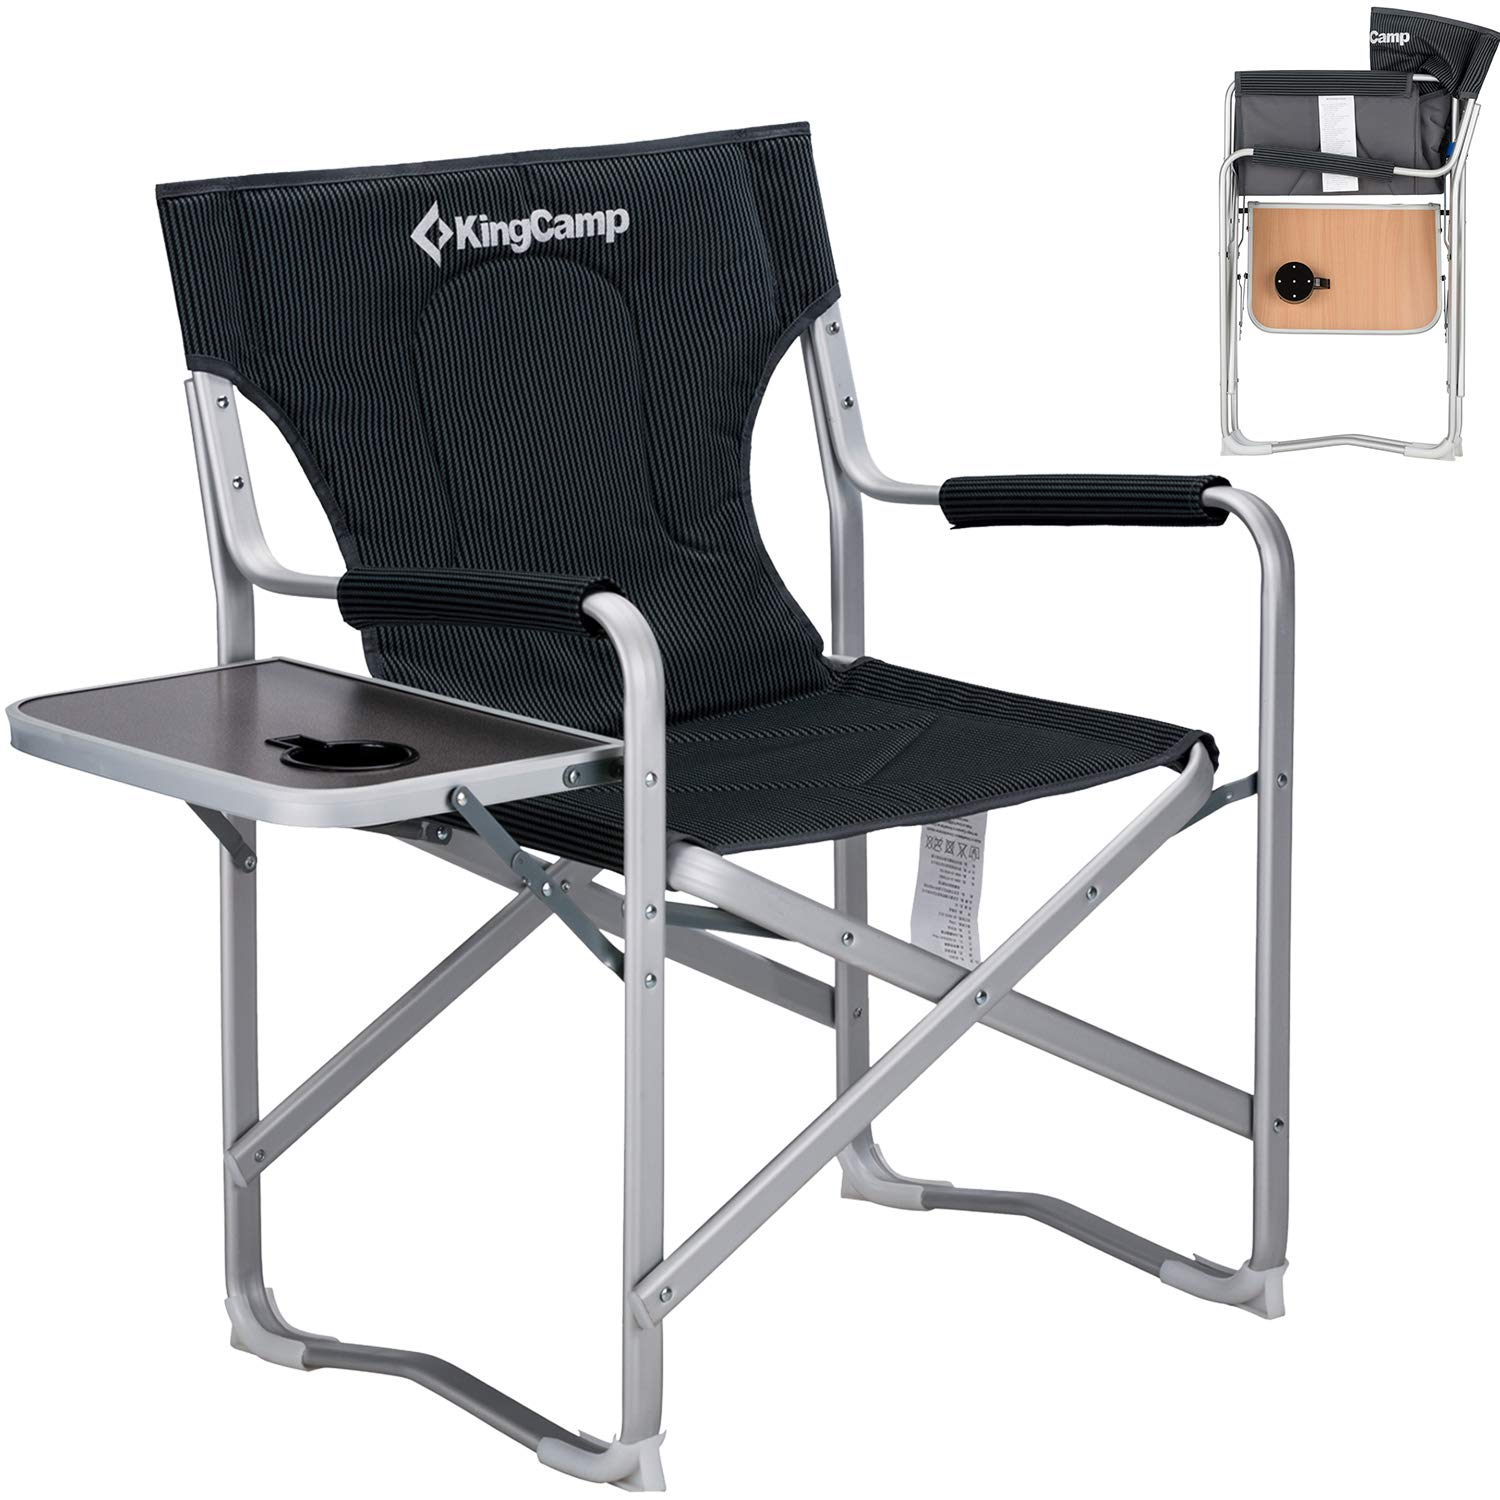 KingCamp Heavy Duty Director's Chair Padded Full Back Aluminum Portable Camping Chair with Armrest Side Table and Cup Holder, 7.7 lbs by KingCamp